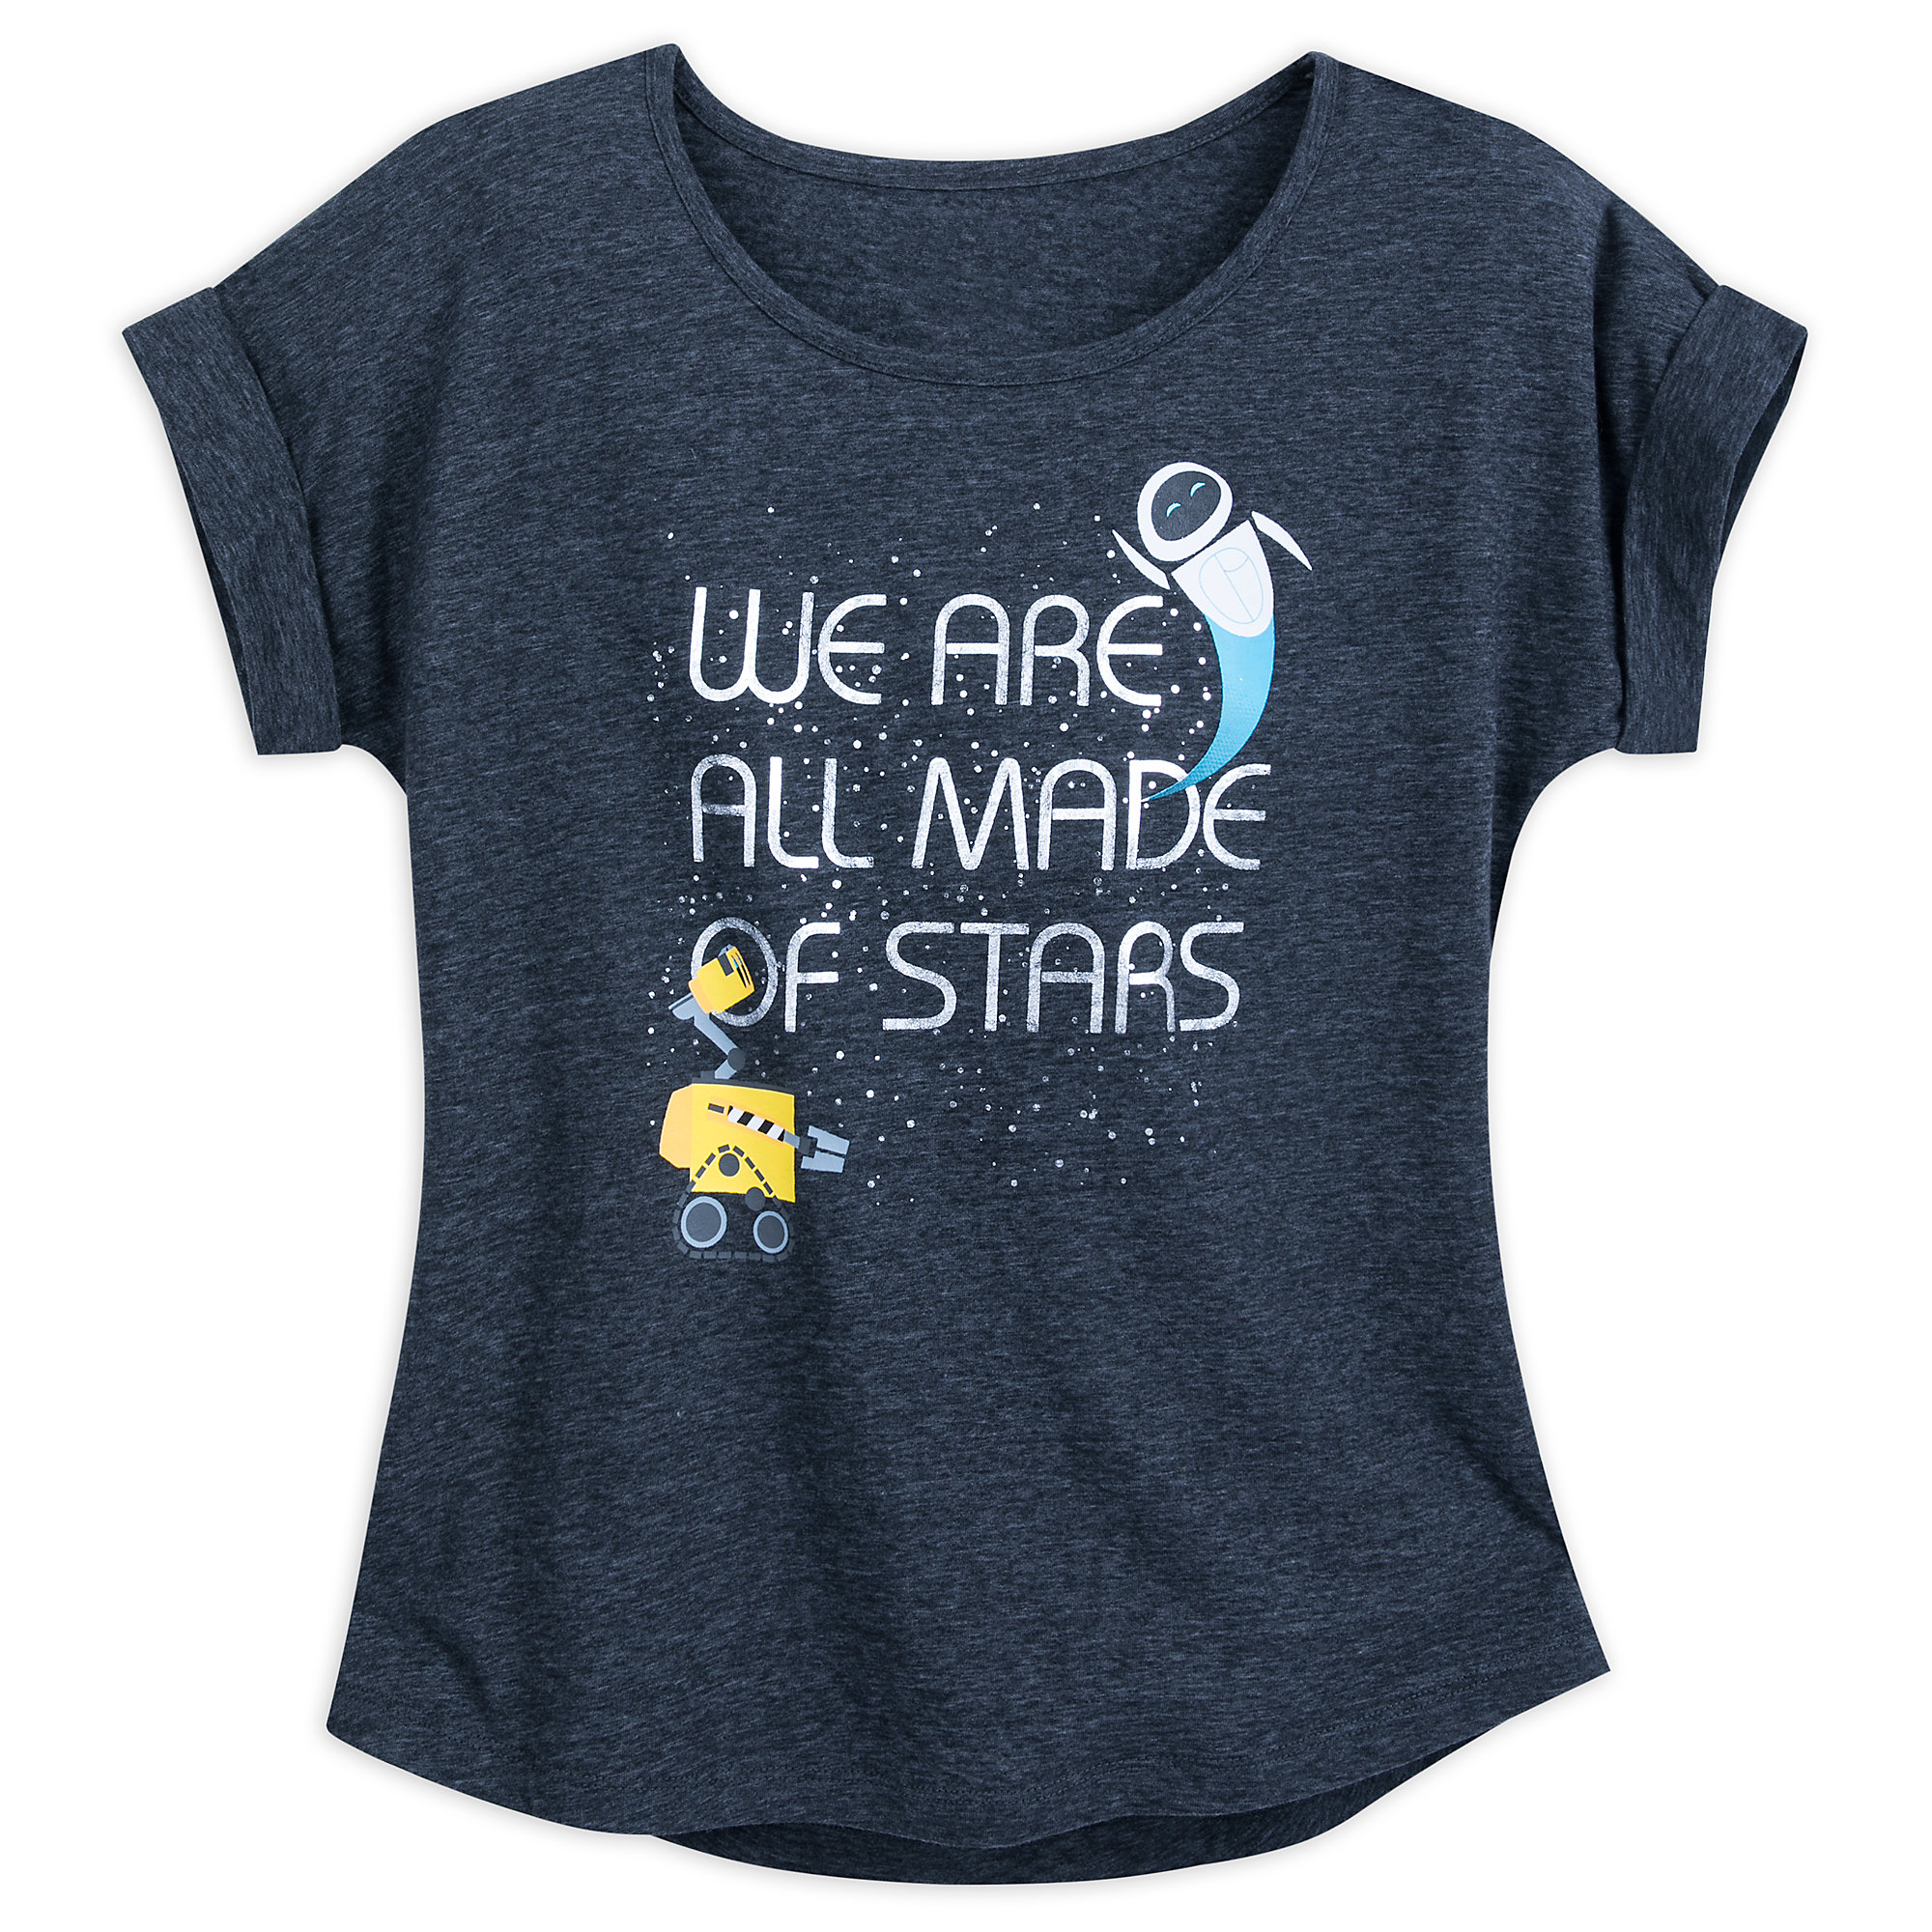 WALL•E and EVE T-Shirt for Women